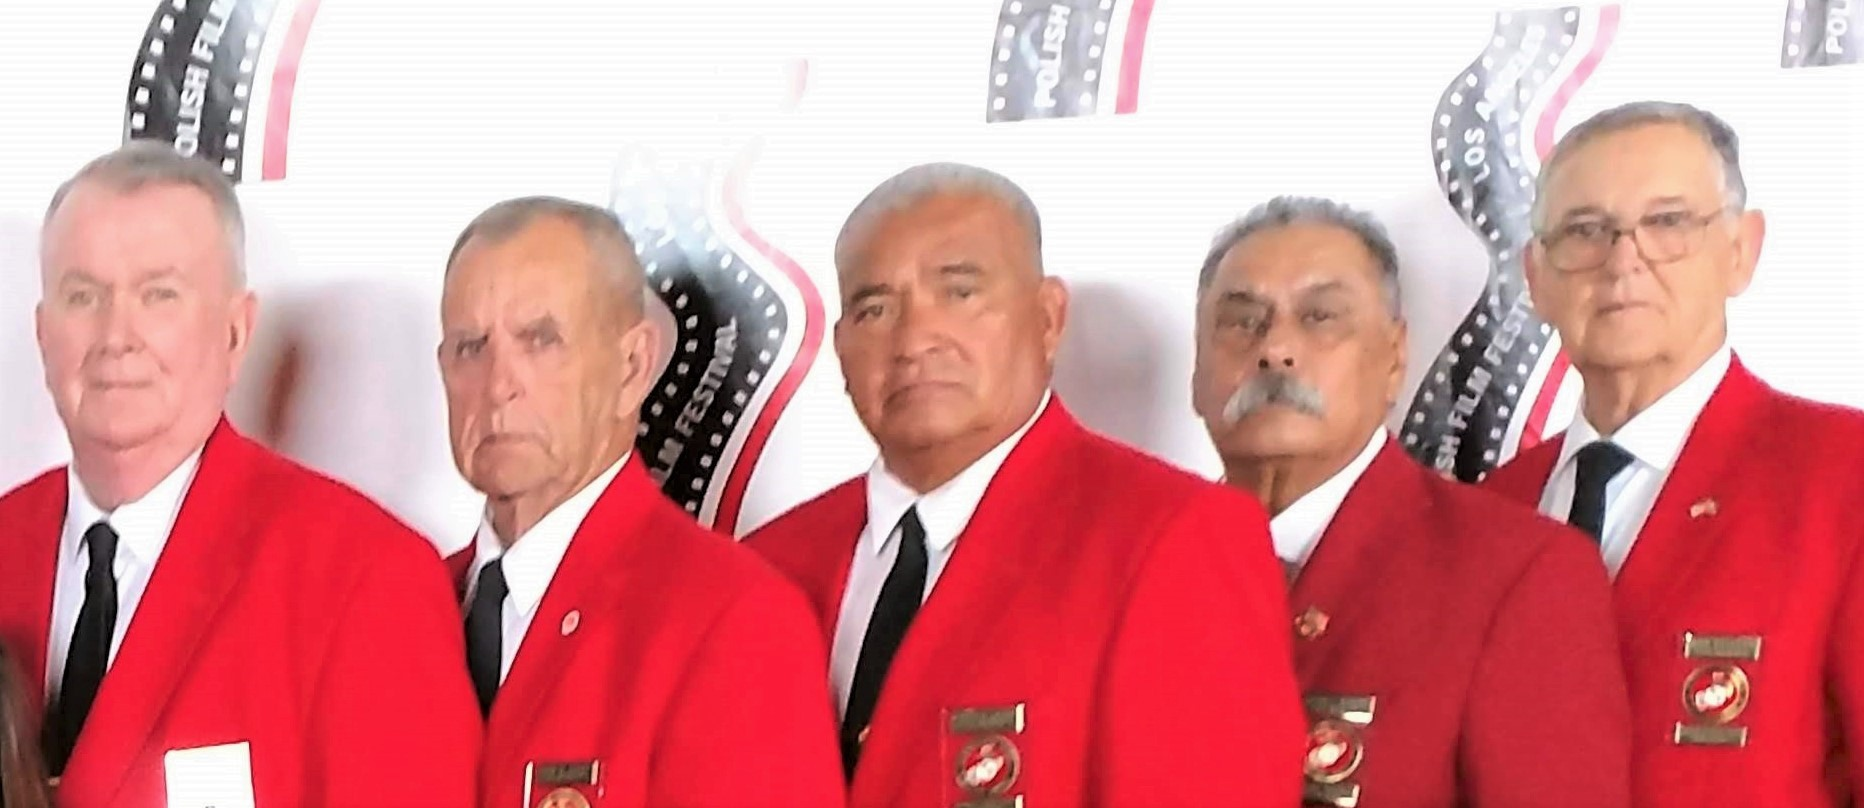 October 17, 2018   Color Guard at the Annual Polish Film Festival in Hollywood.  L/R: Dick Jennings, John Coley, Fausto Galvan, Harry Hodges, and Ben Pfister.